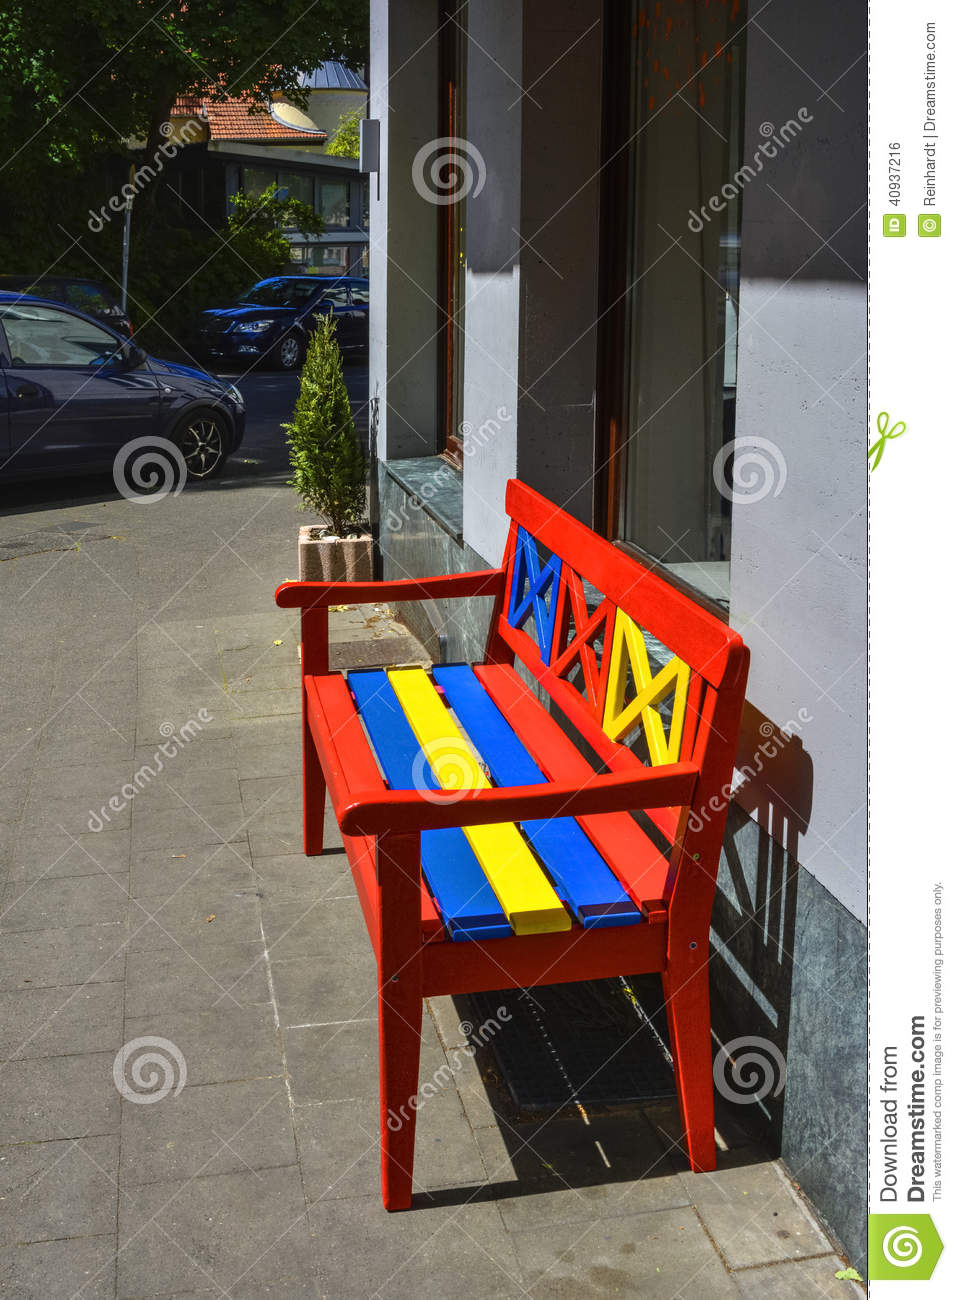 Wooden bench, painted in red, yellow and blue